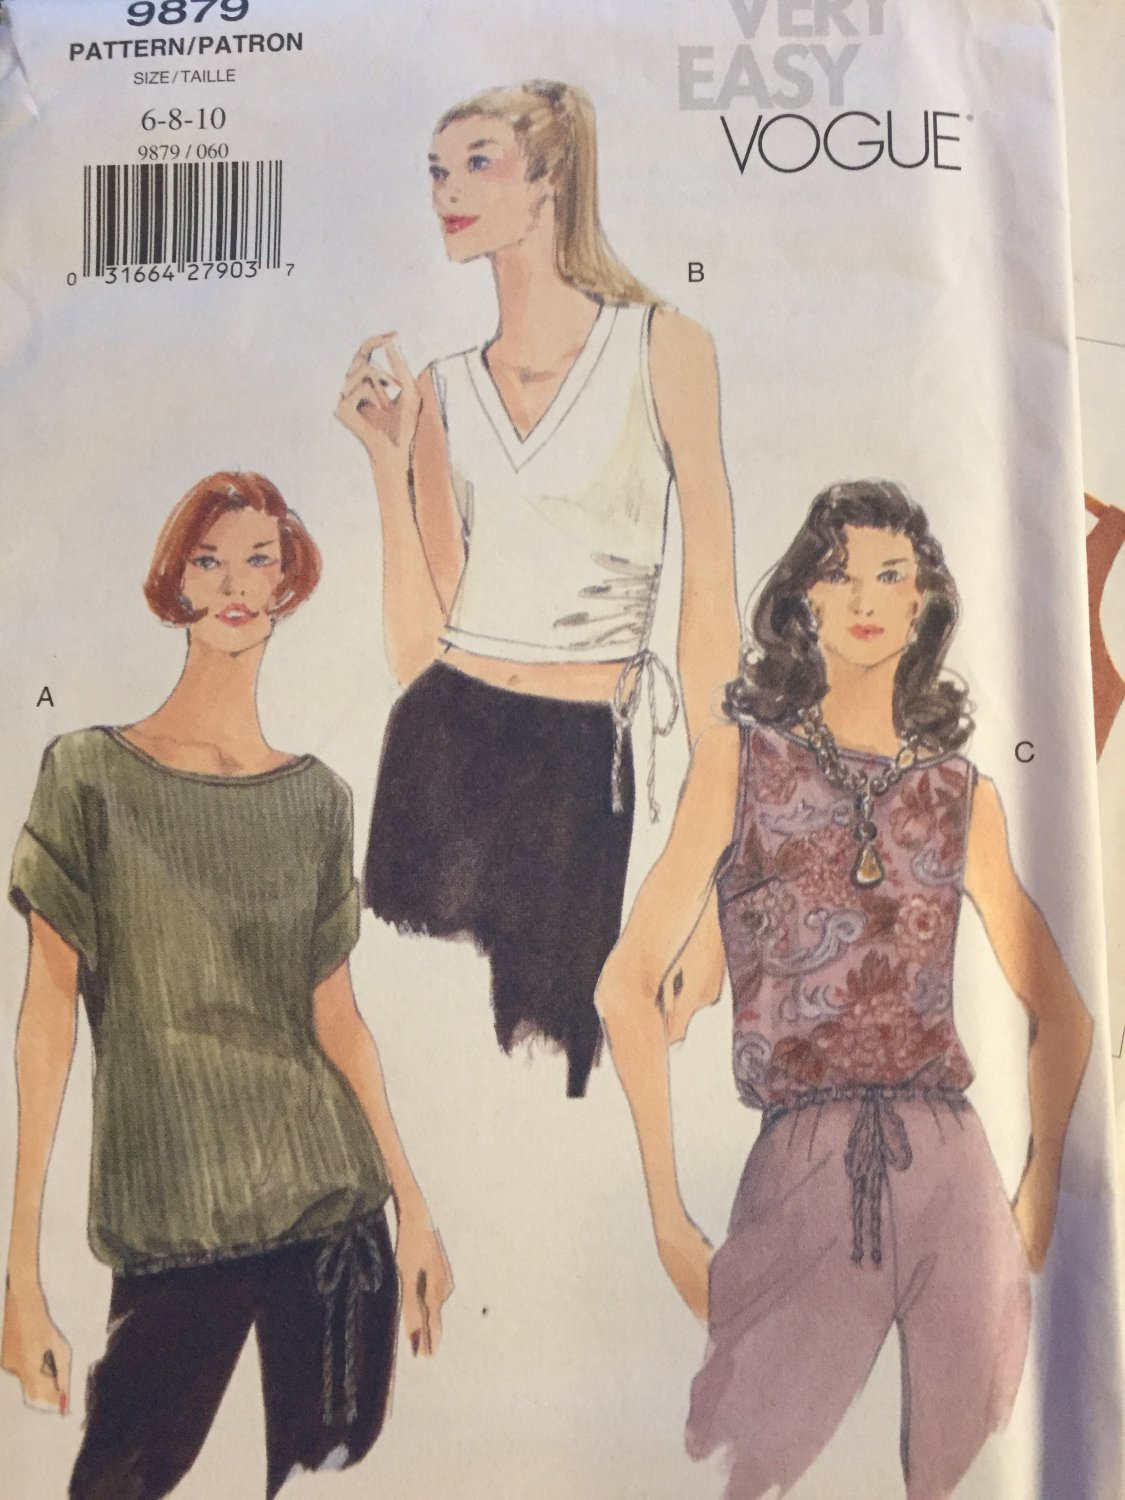 VOGUE 9879 Misses Top in 3 lengths, sleevless and with sleeves 6 8 10